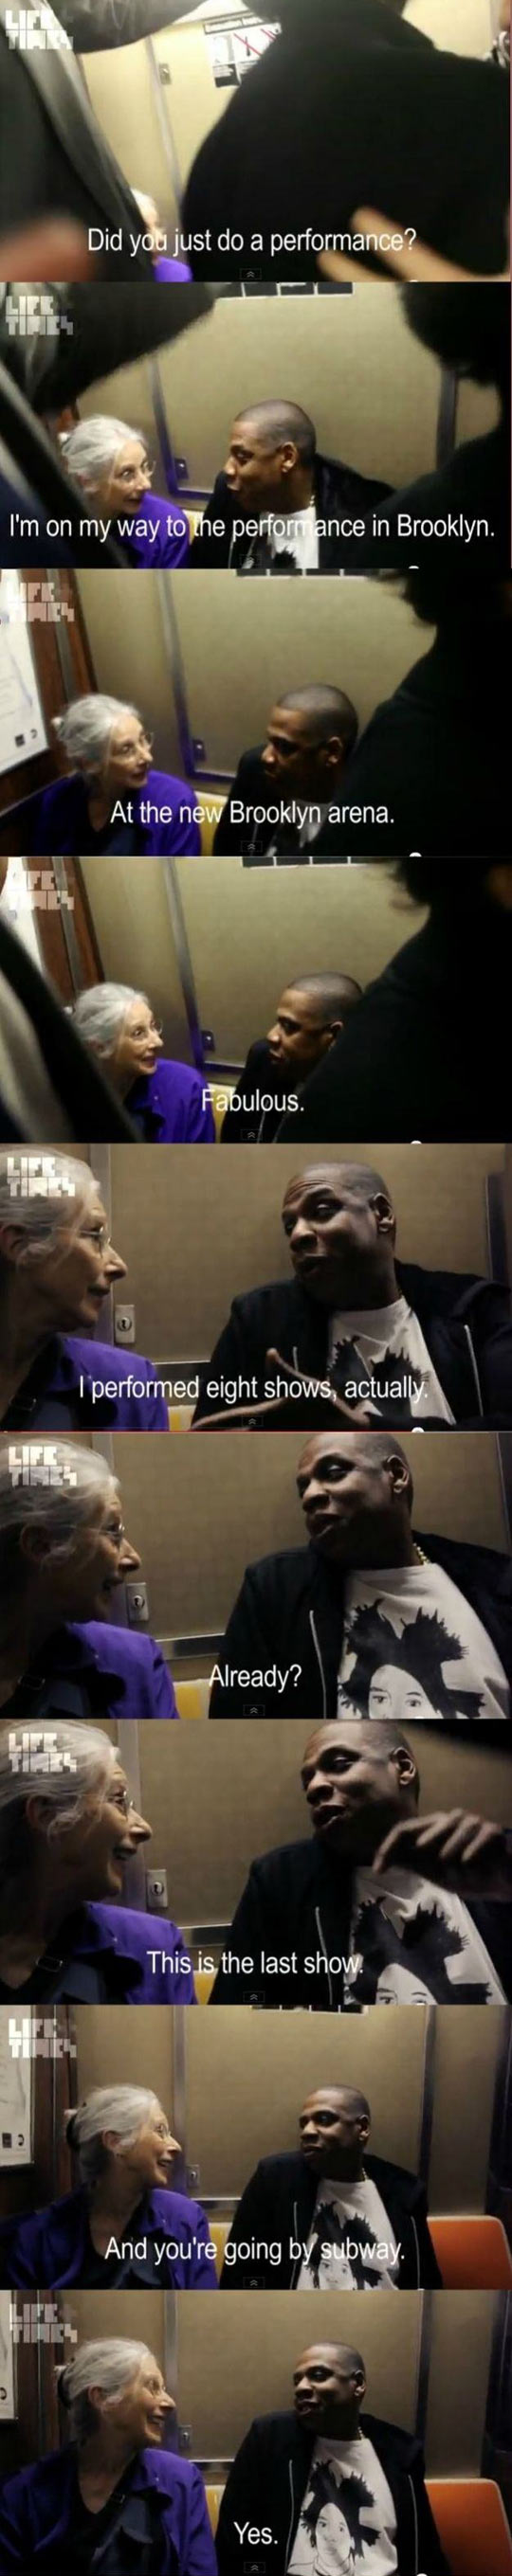 ffunny-Jay-Z-subway-old-lady-talking